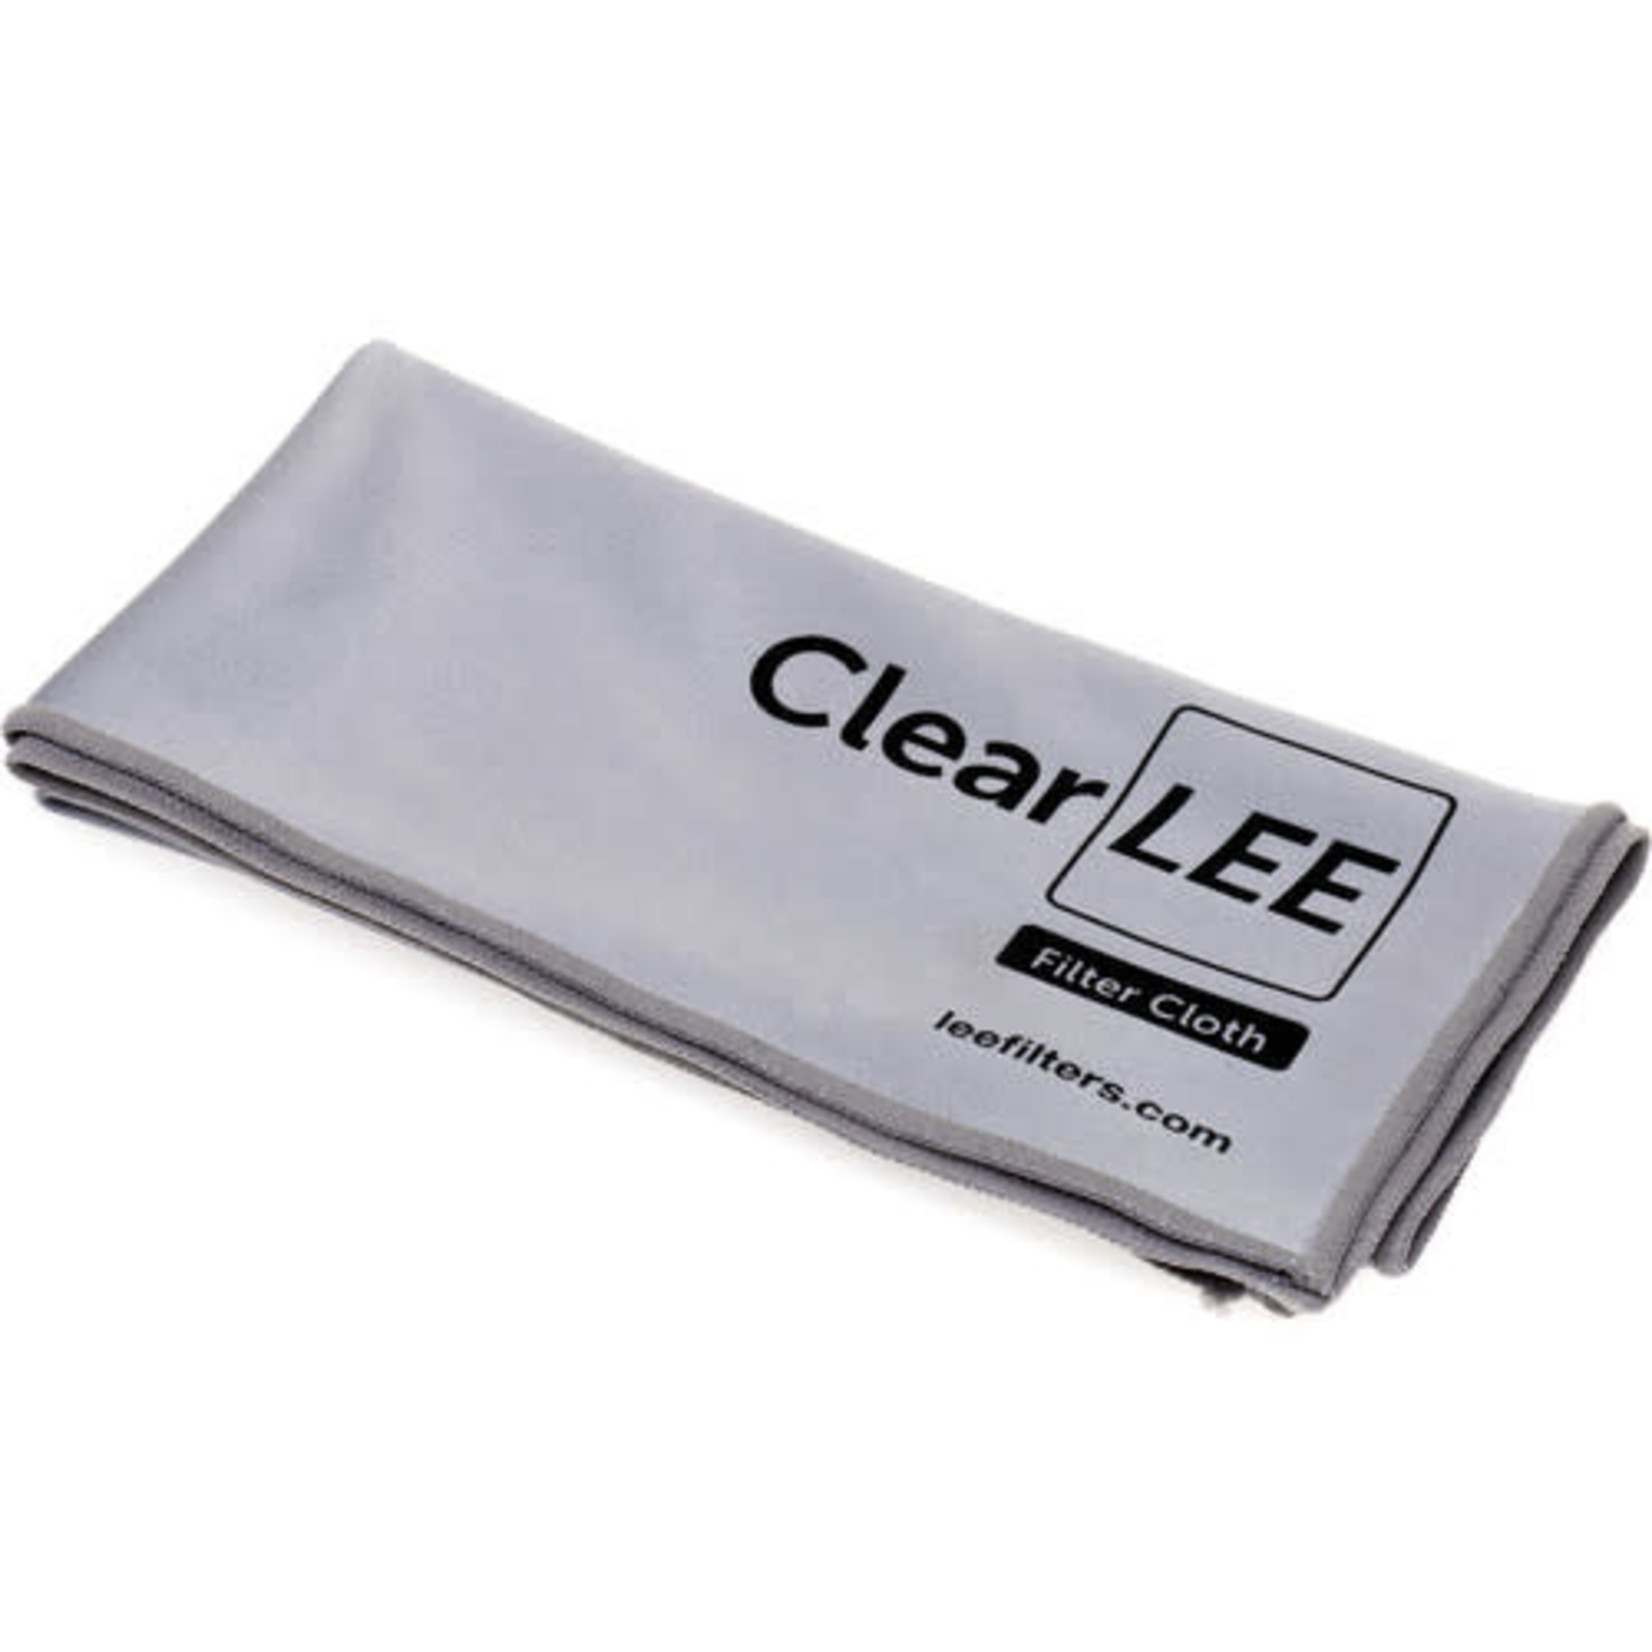 Lee LEE Filters ClearLEE Filter Cleaning Cloth